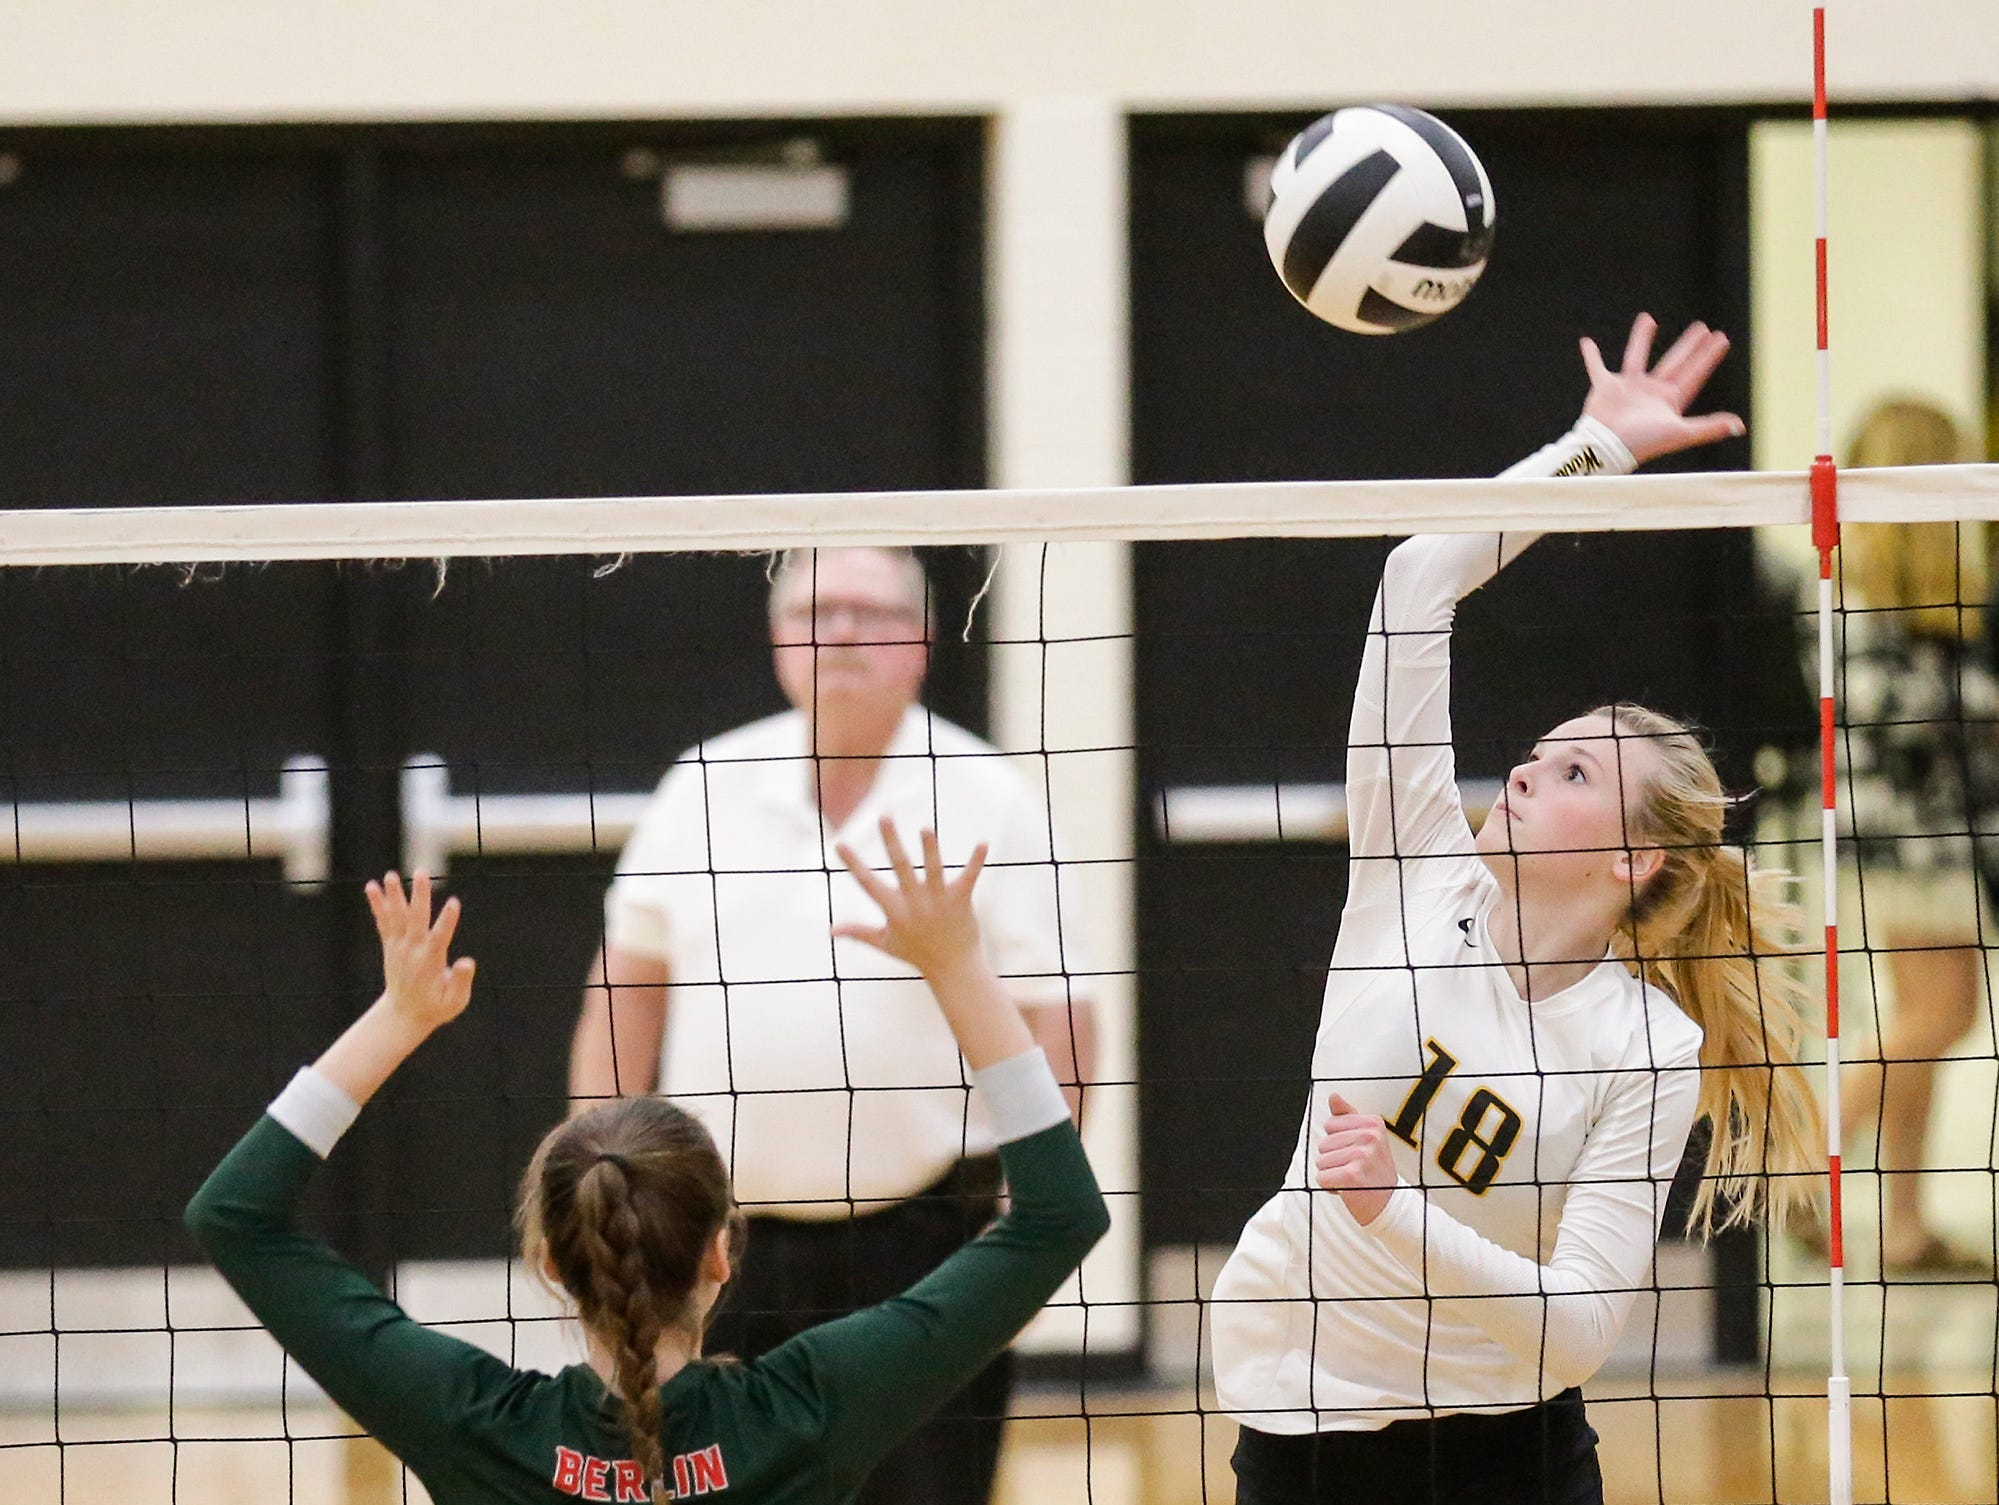 Waupun High School volleyball's Makenna Harmsen hits the ball against Berlin High School during their WIAA regional quarter-final playoff game Tuesday, Oct. 16, 2018, in Waupun.